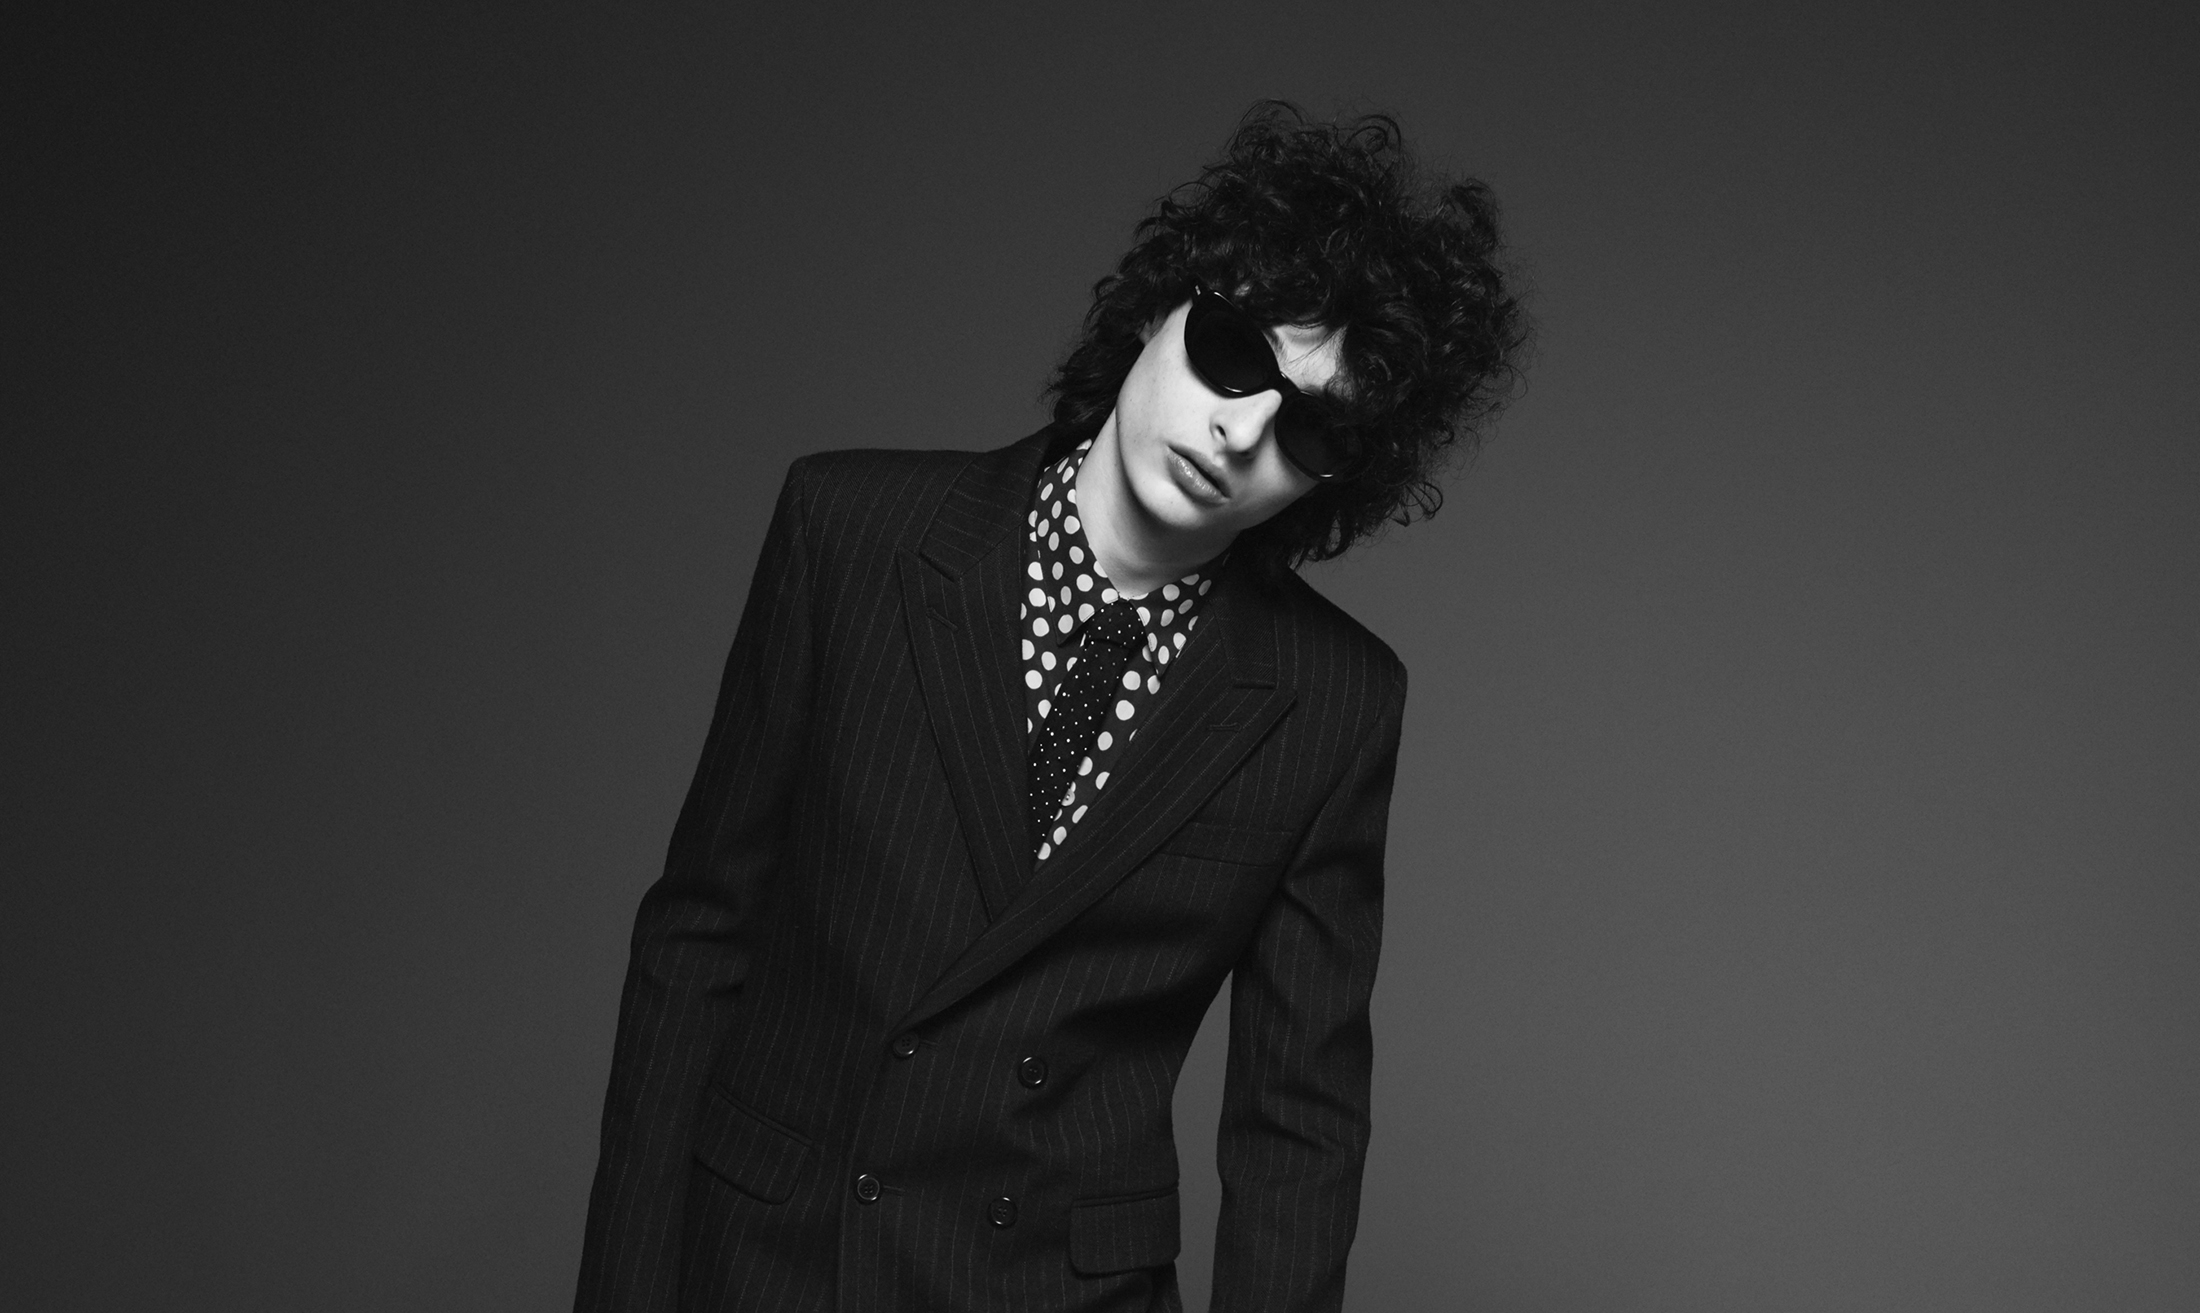 Saint Laurent Fall 2019 Ad Campaign with Finn Wolfhard